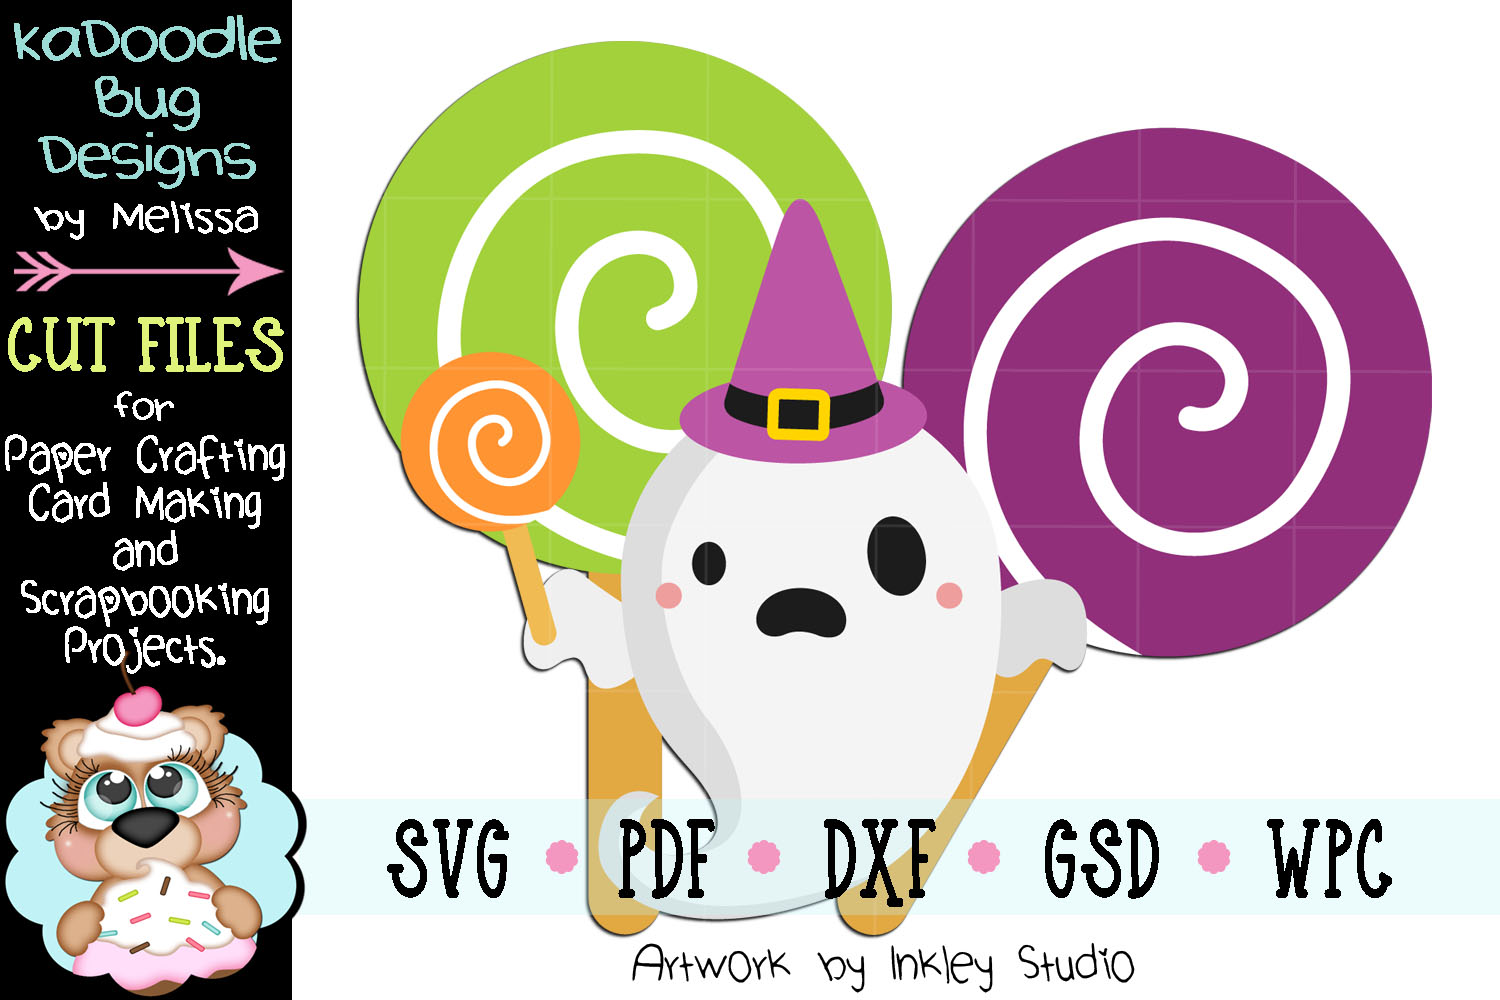 Halloween Lollipop Ghost Cut File - SVG PDF DXF GSD WPC example image 1